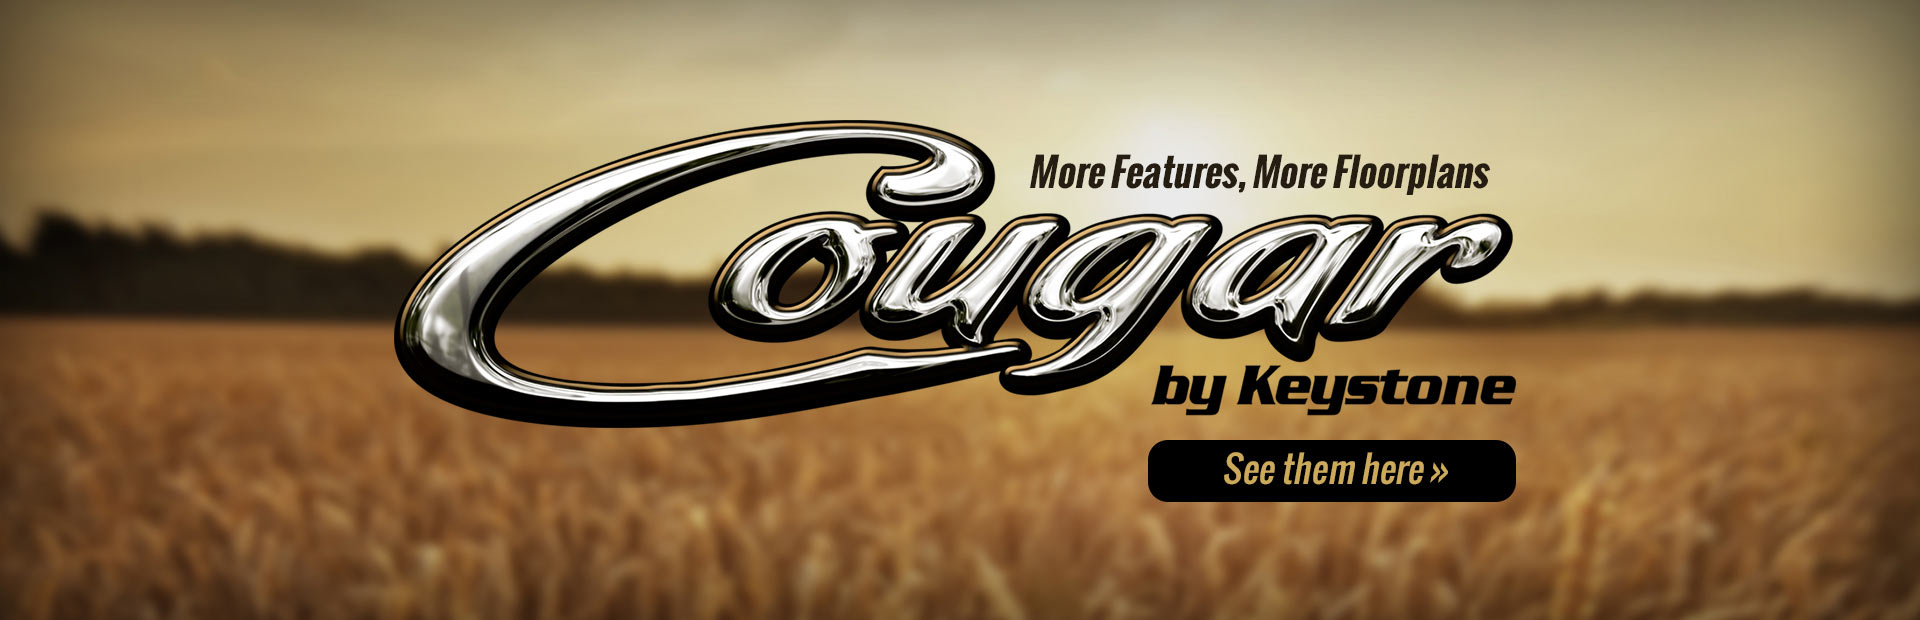 Cougar by Keystone: Click here to view the models.